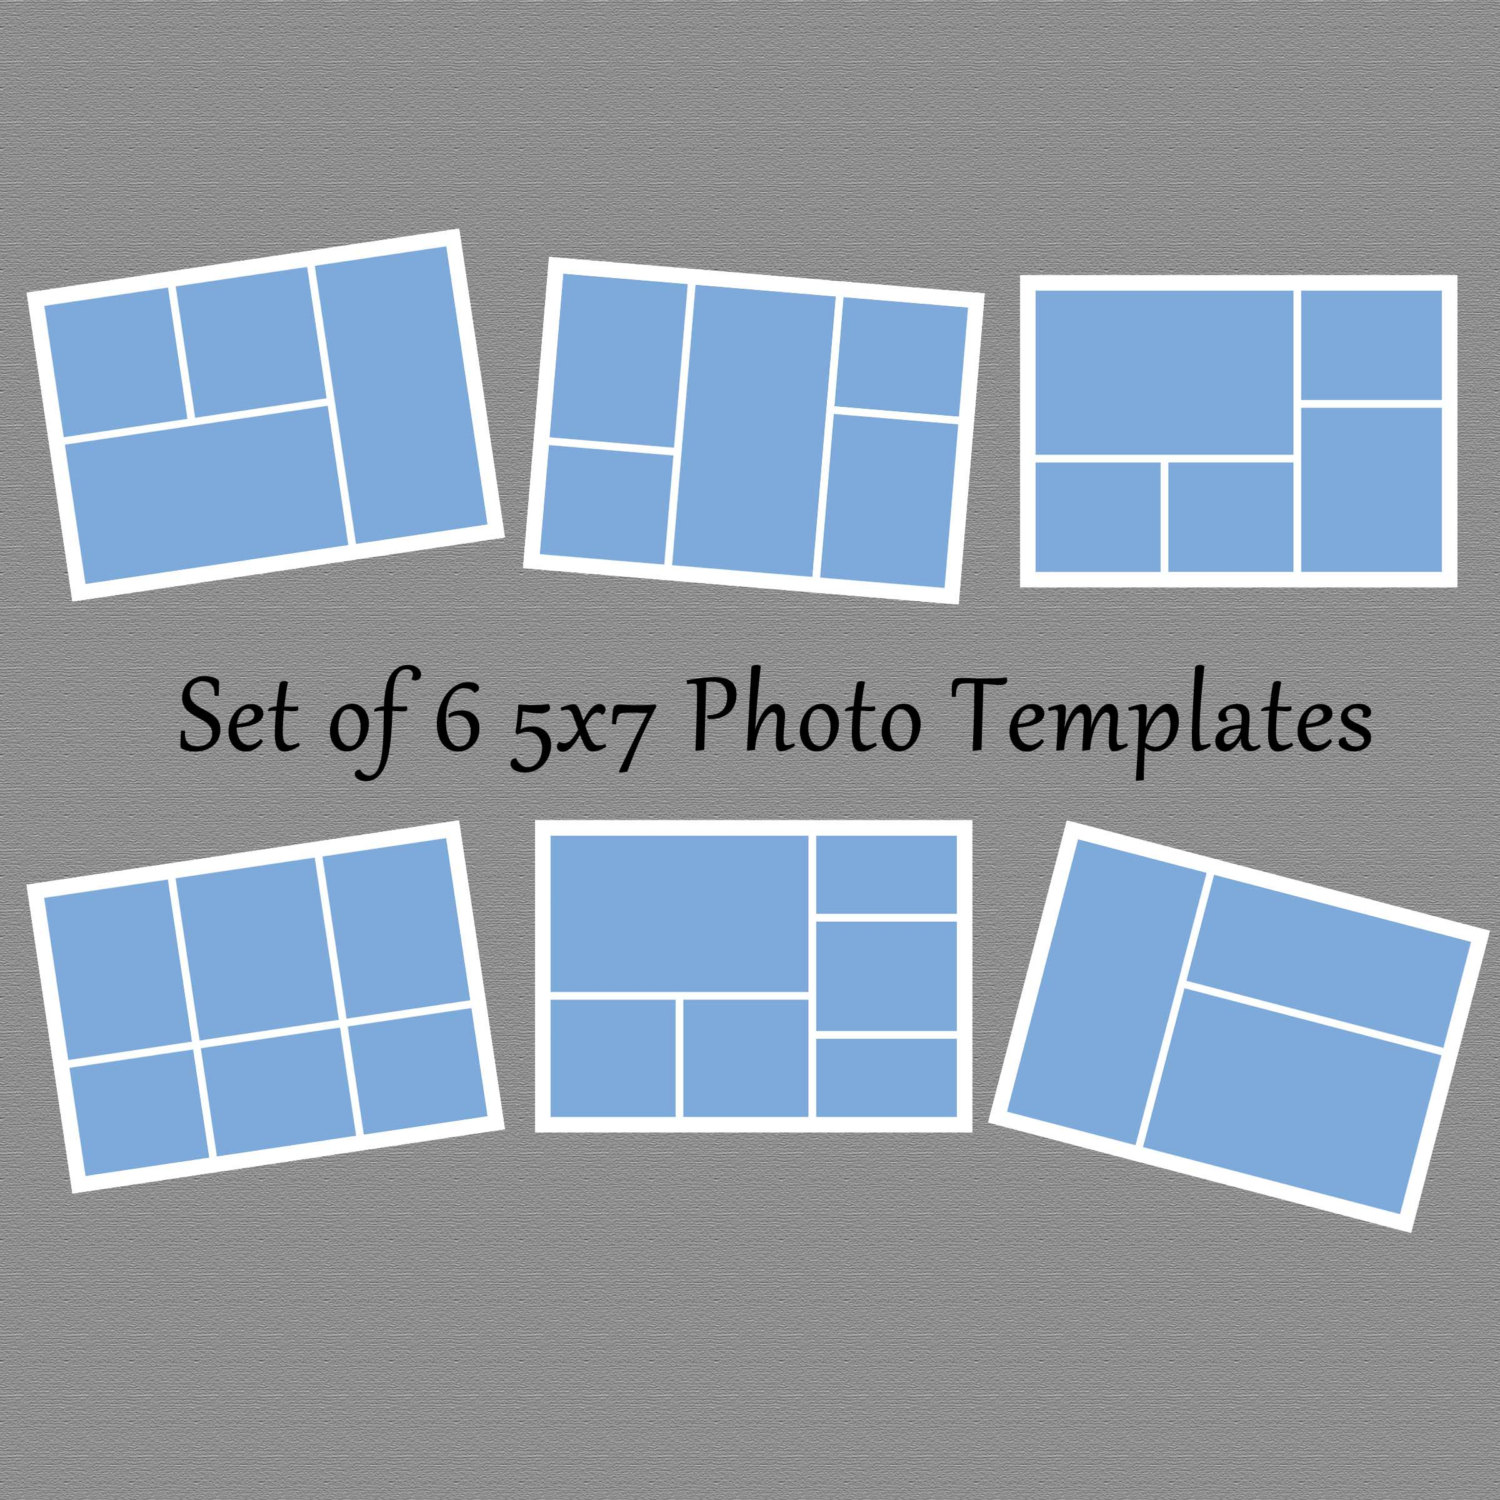 15 simple collage template psd images collage templates for Free online photo collage templates